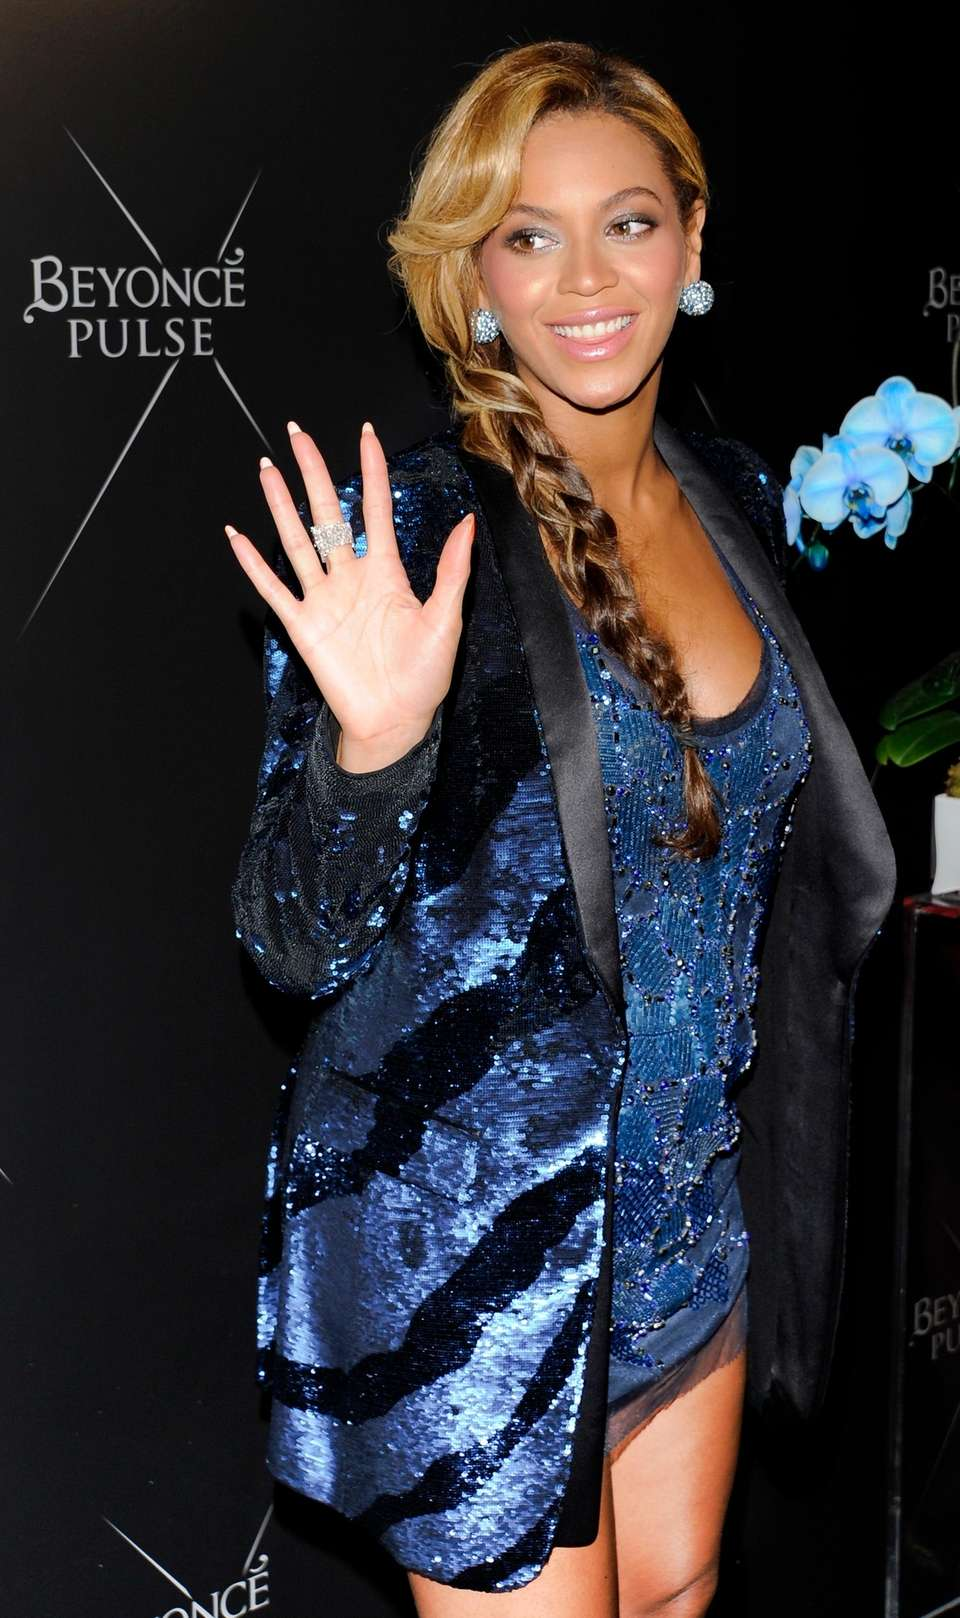 Beyoncé dresses in Roberto Cavalli while attending the